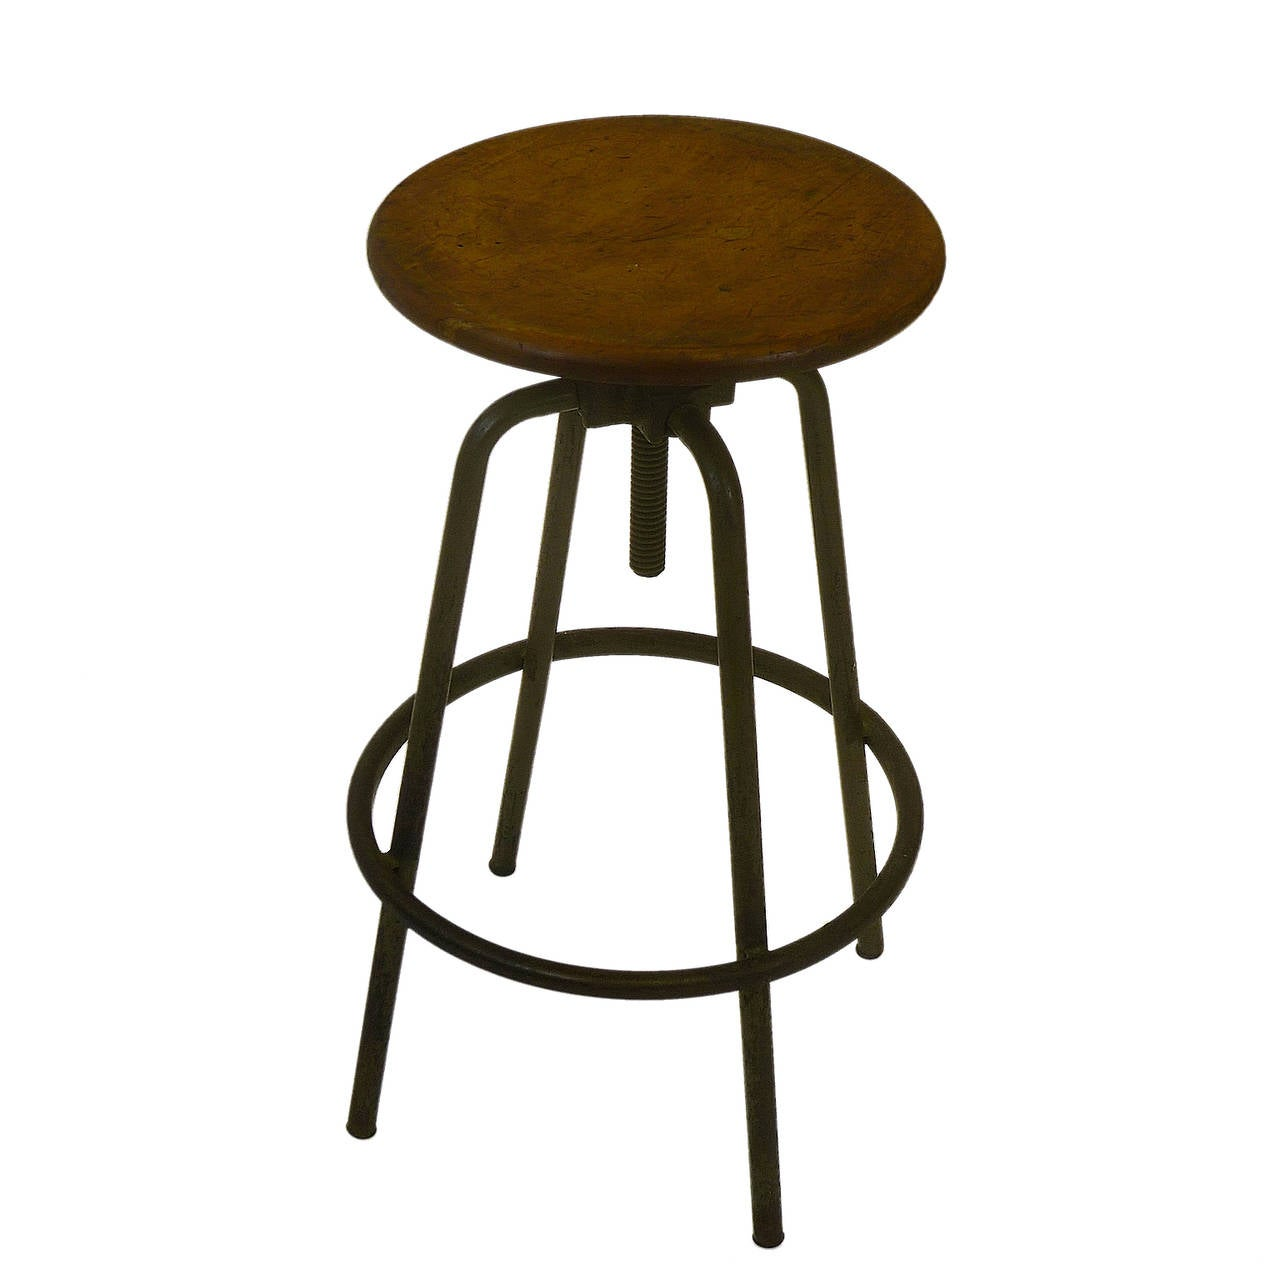 Industrial Adjustable Height Architects Stool For Sale At